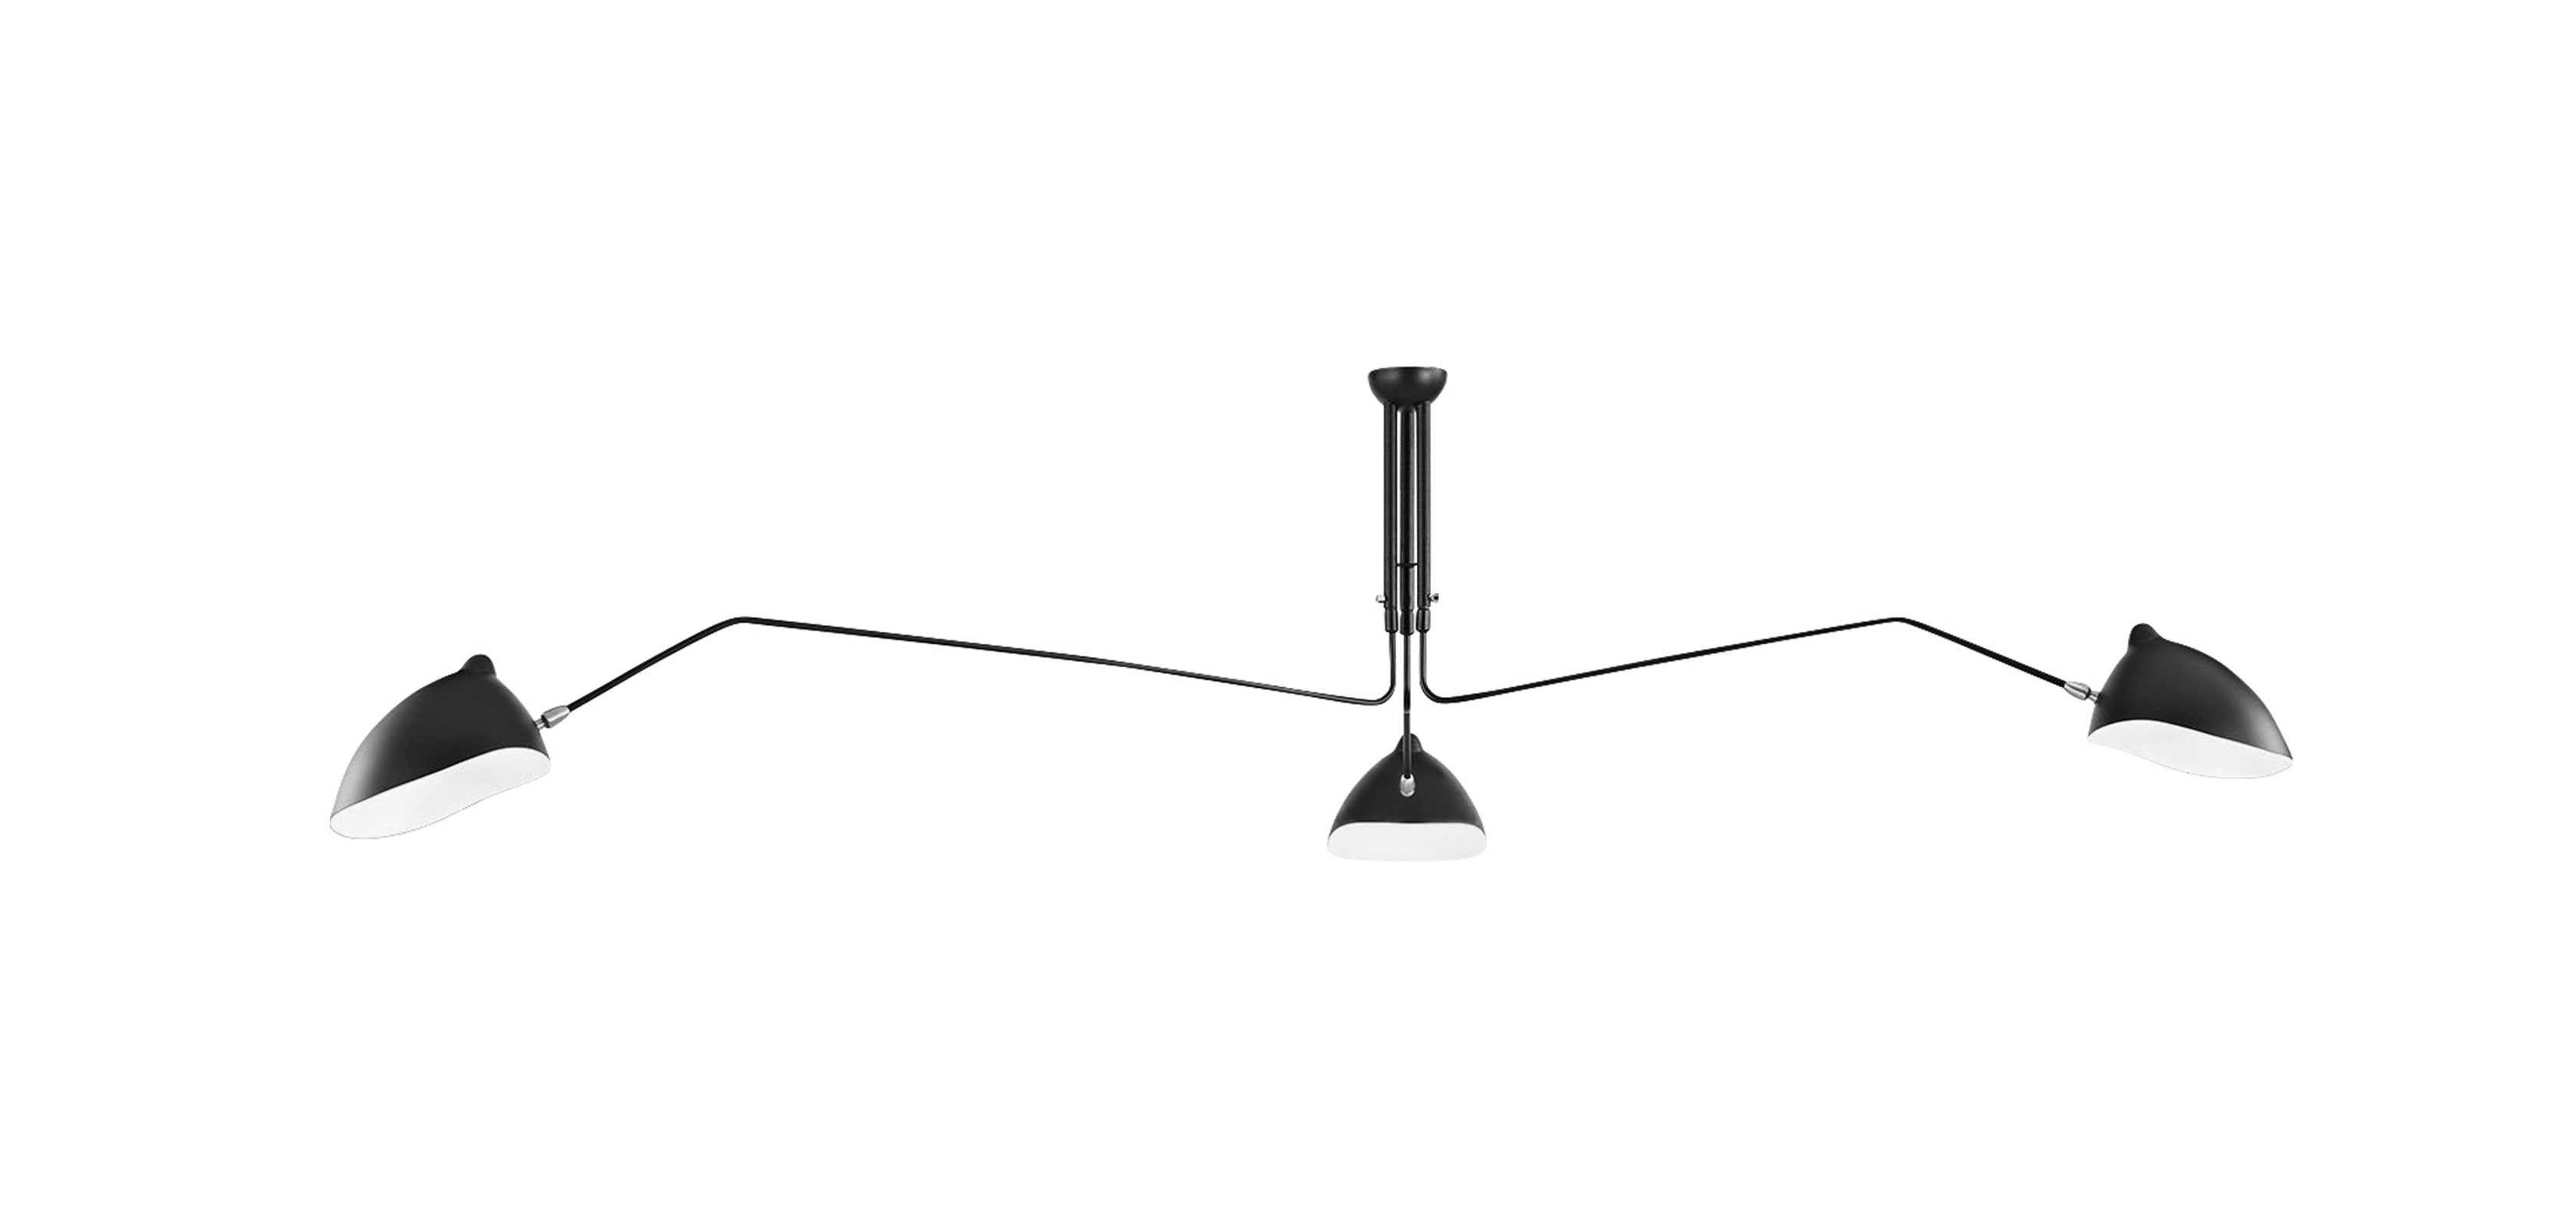 Design Serge Mouille mcl r1 pendant lamp serge mouille style suspensions lampe suspension style